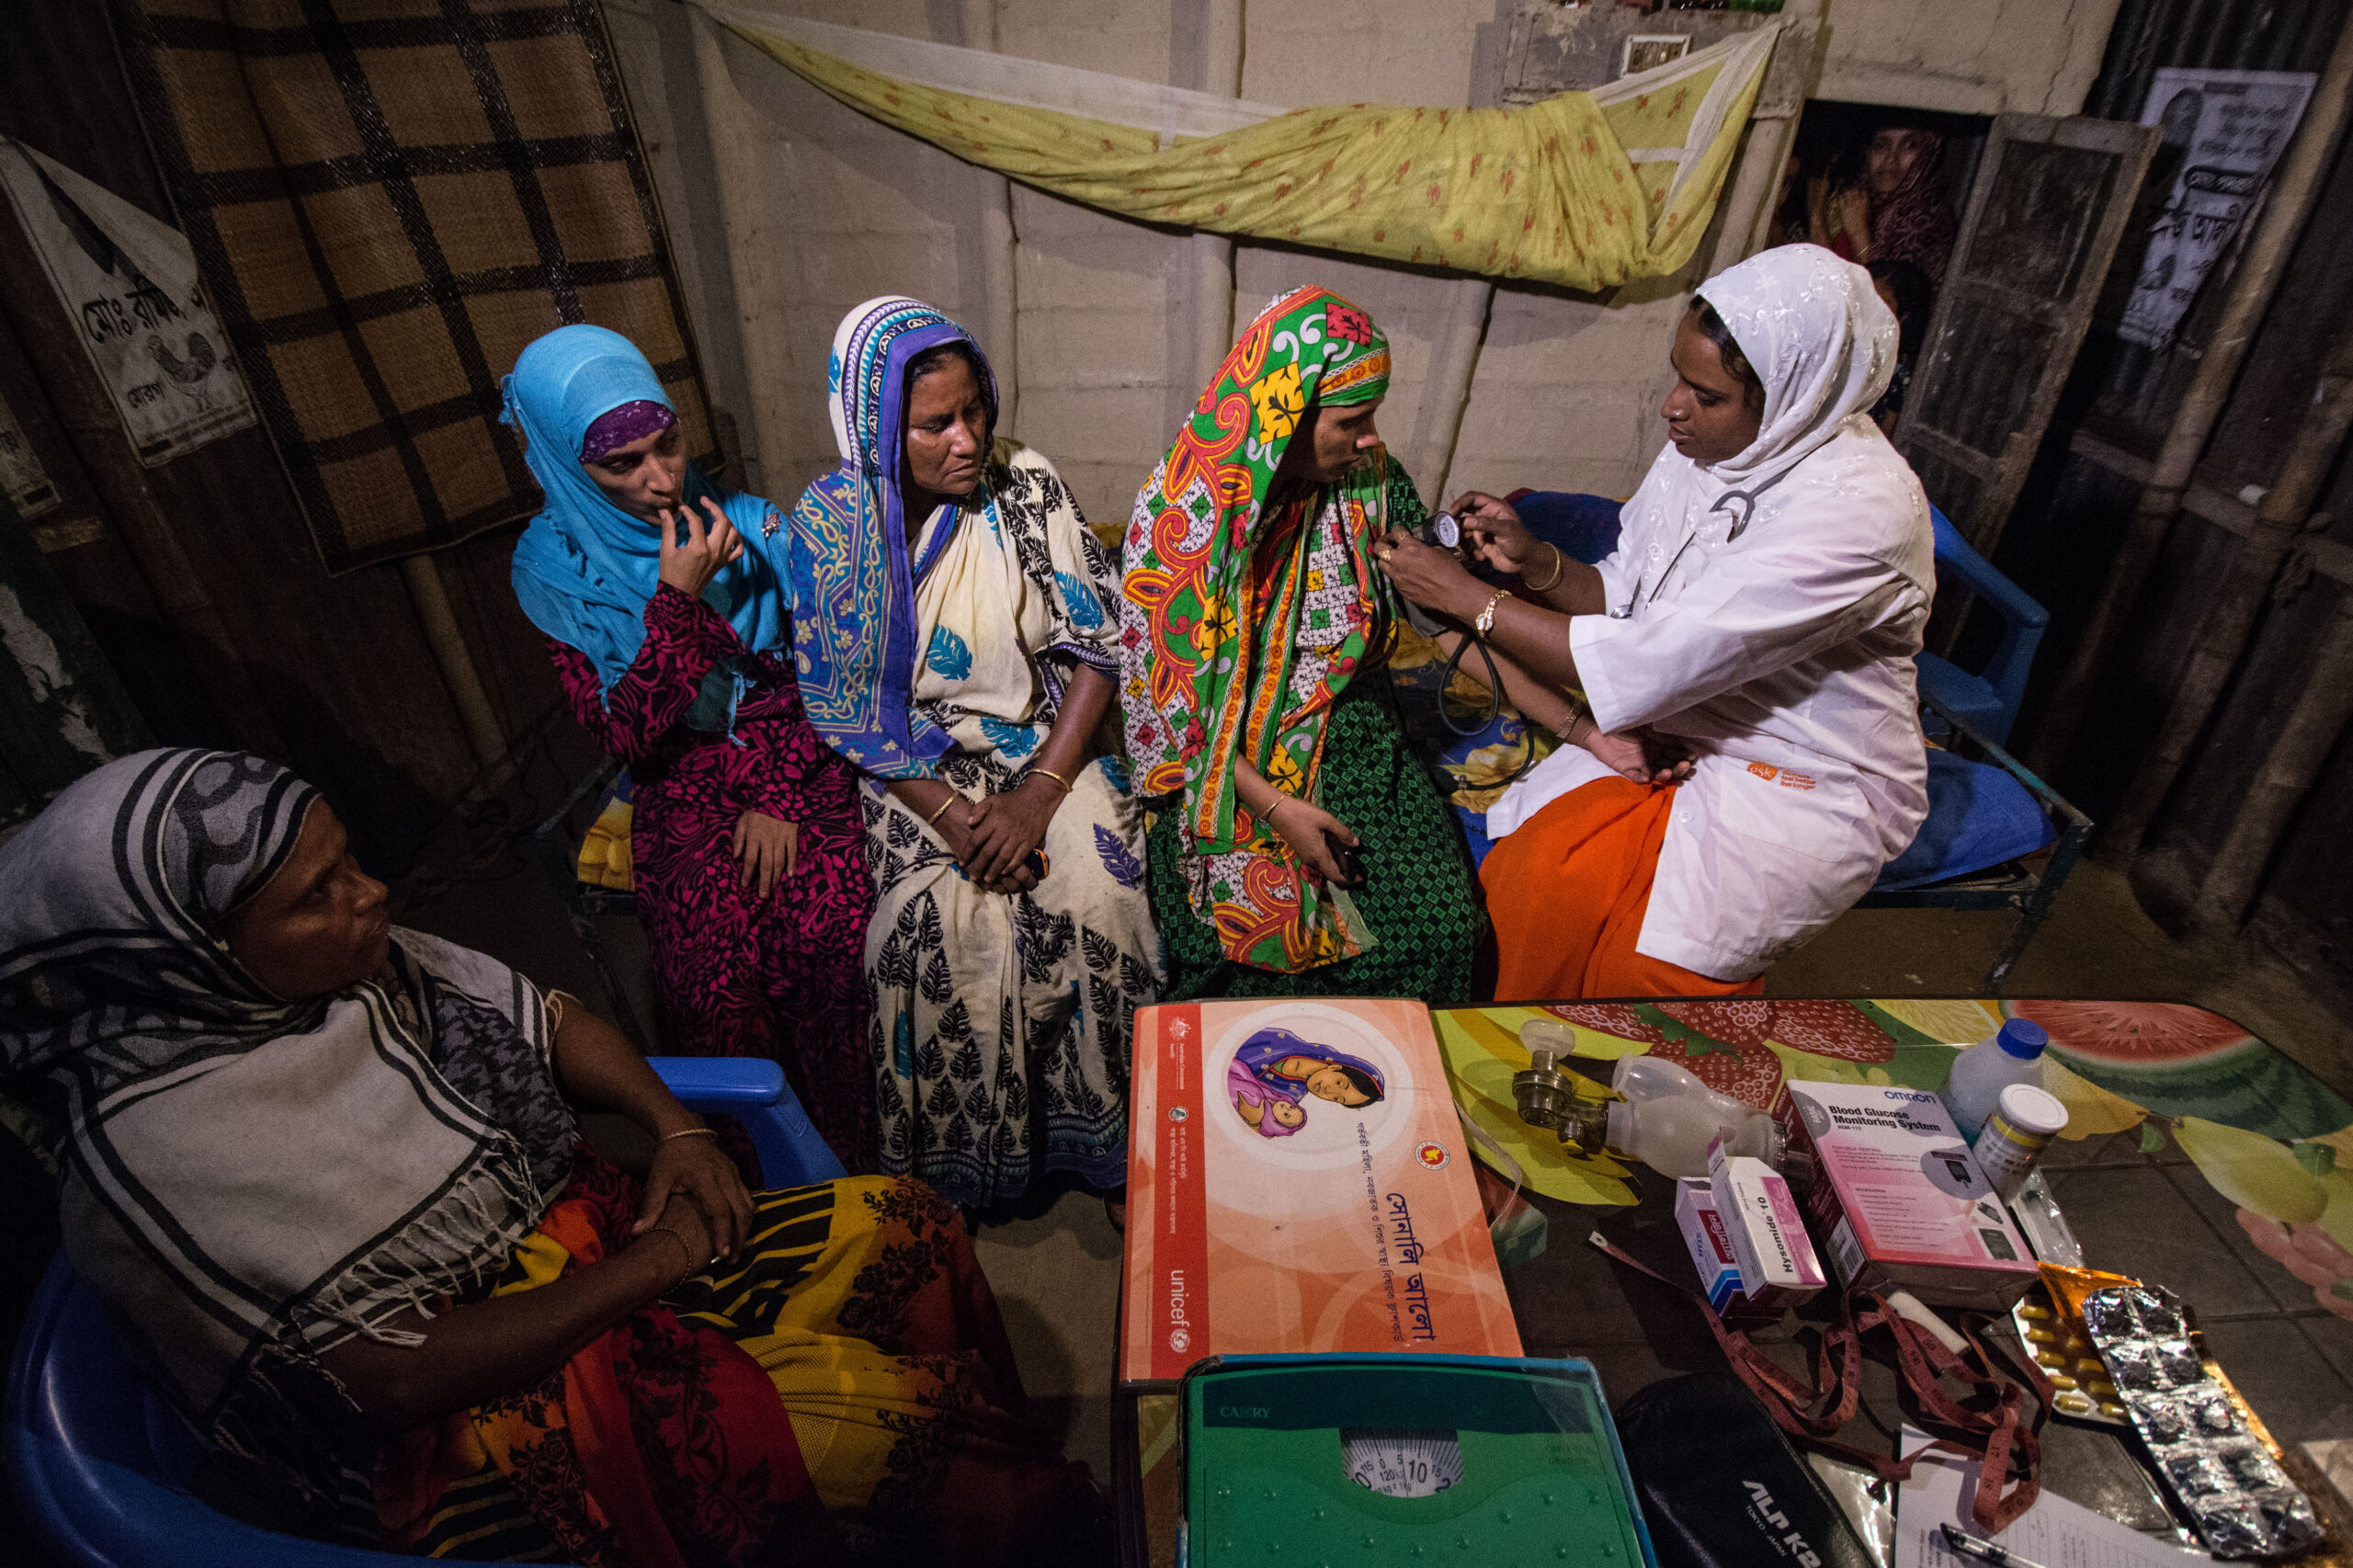 A community health worker with a group of women in Bangladesh.